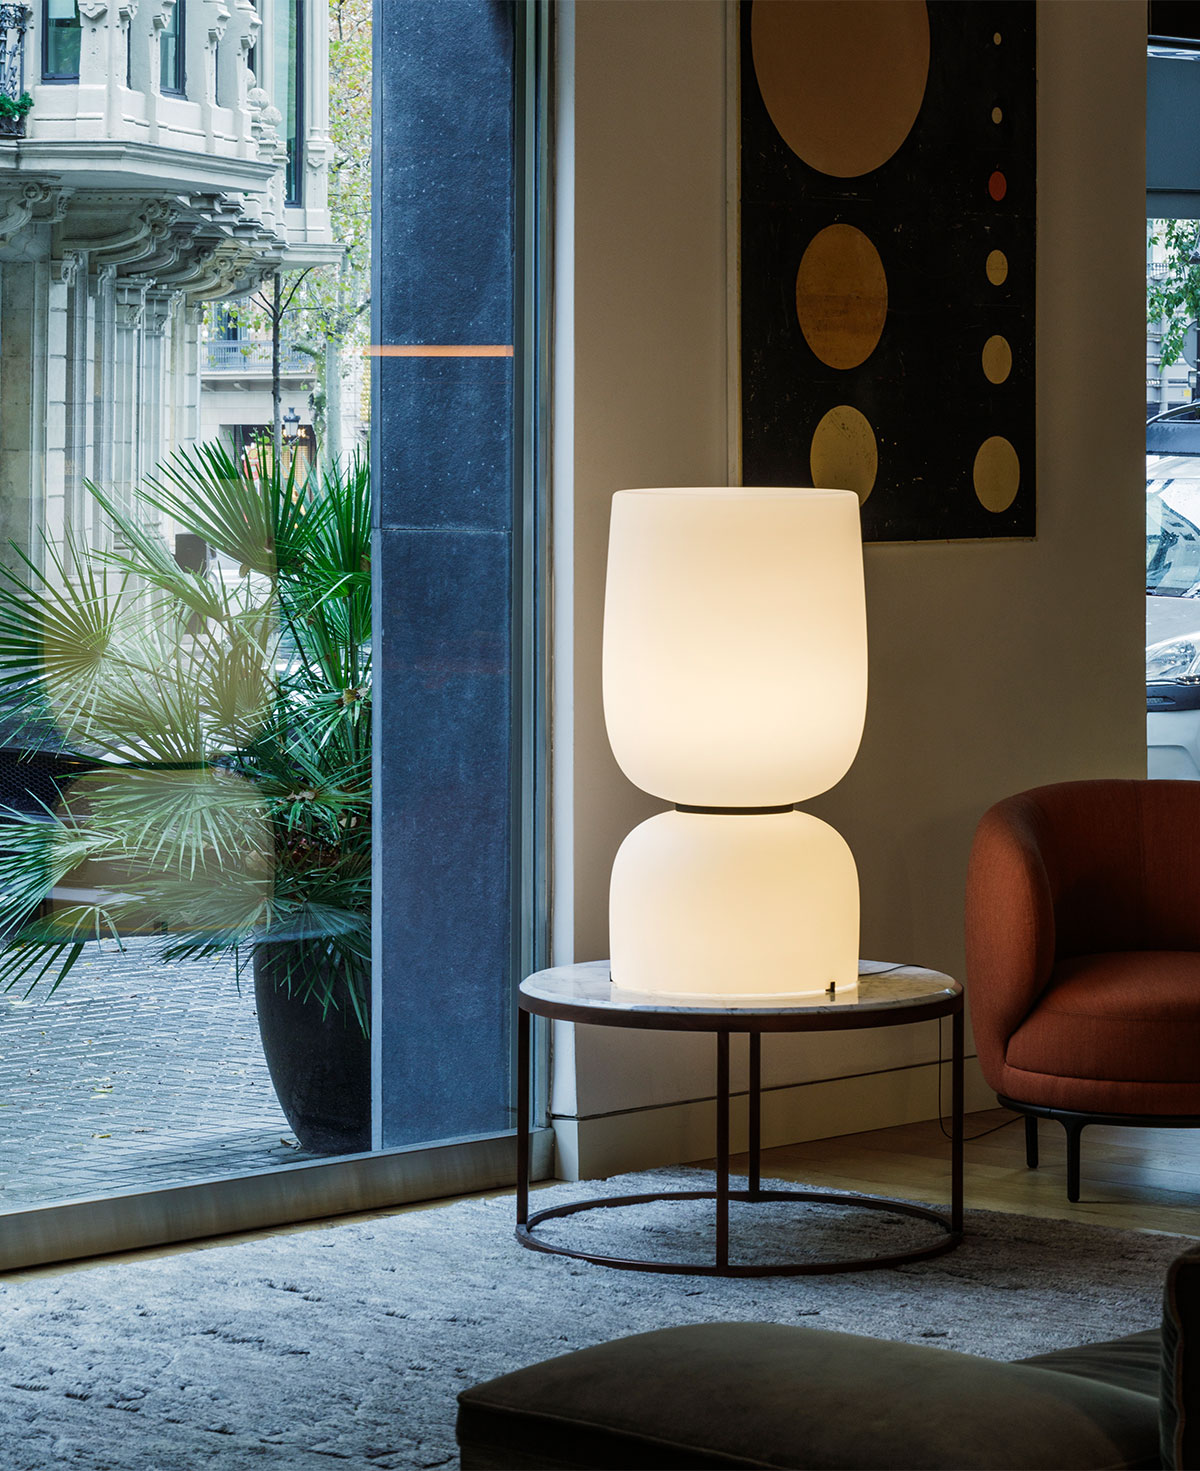 Vibia The Edit - Ghost: Craftsmanship and Cutting-Edge Technology